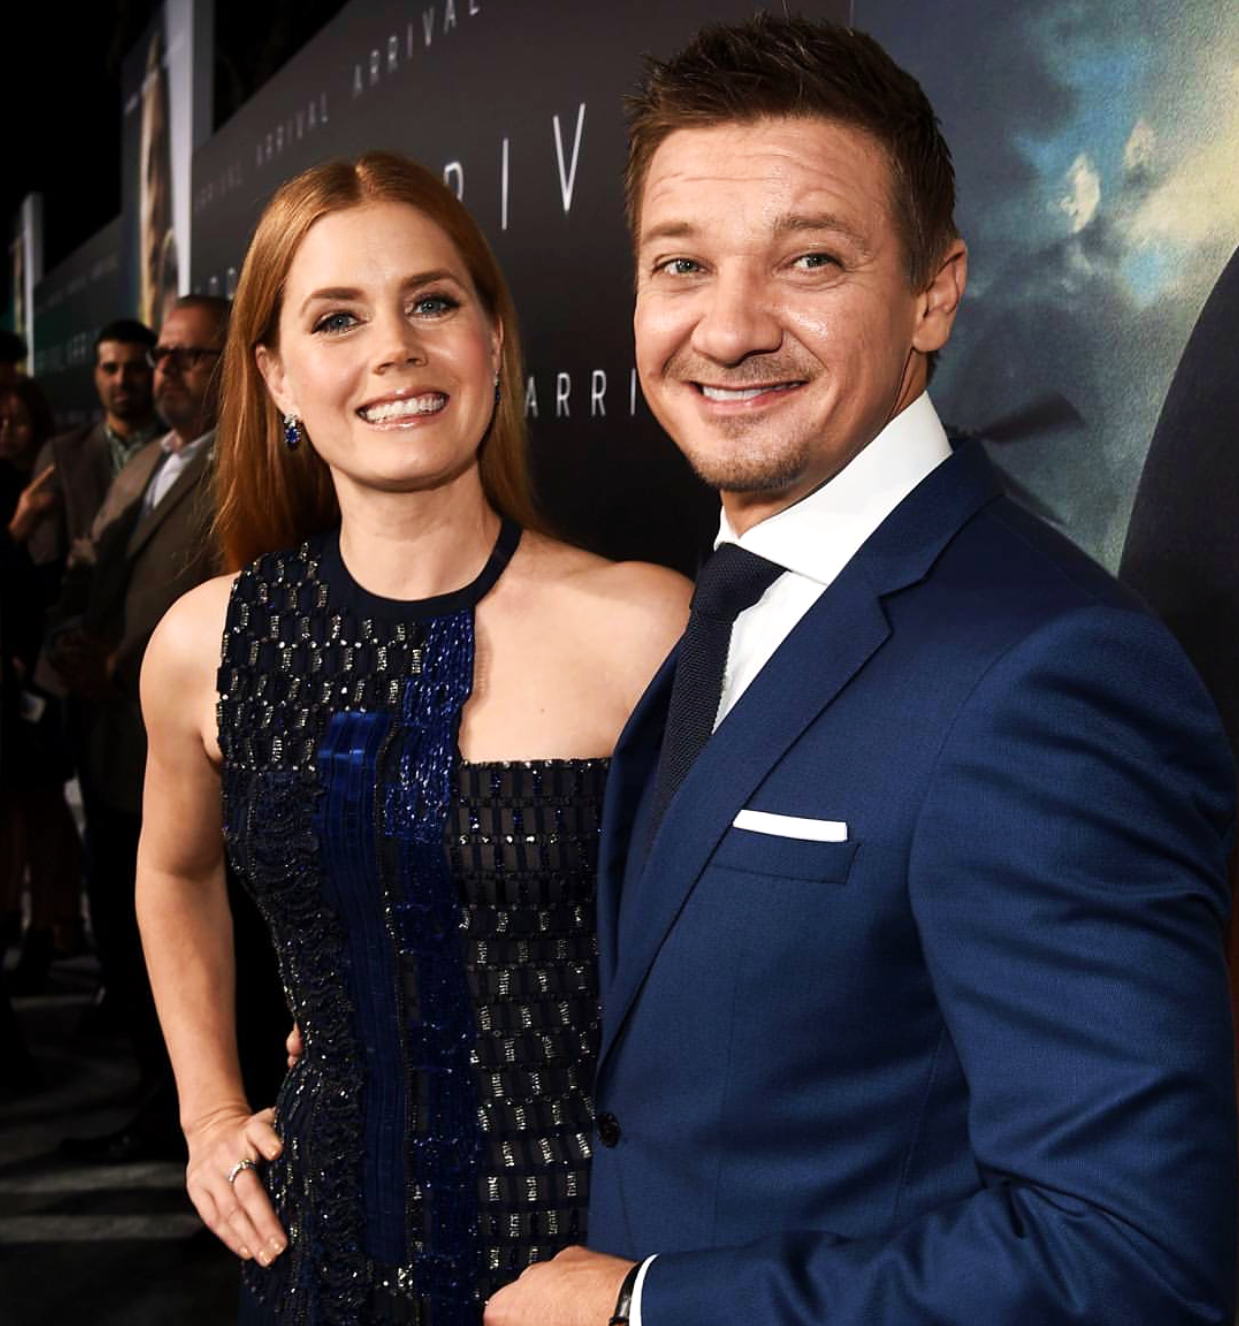 arrival-movie-premiere-amy-adams-jeremy-renner